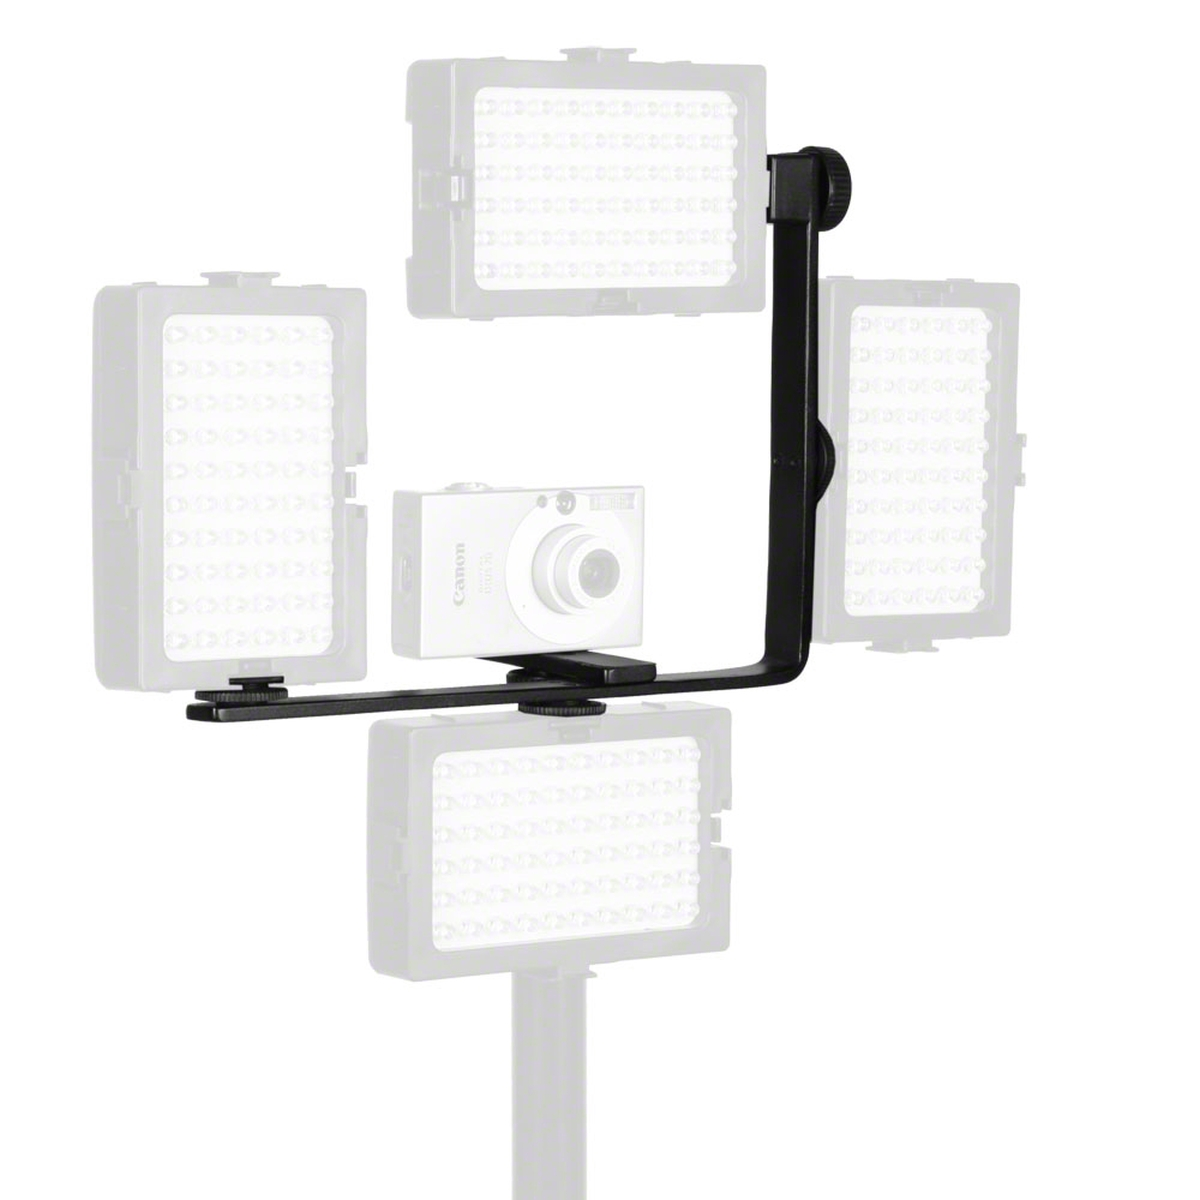 Walimex Auxiliary Corner Bracket for Video Light